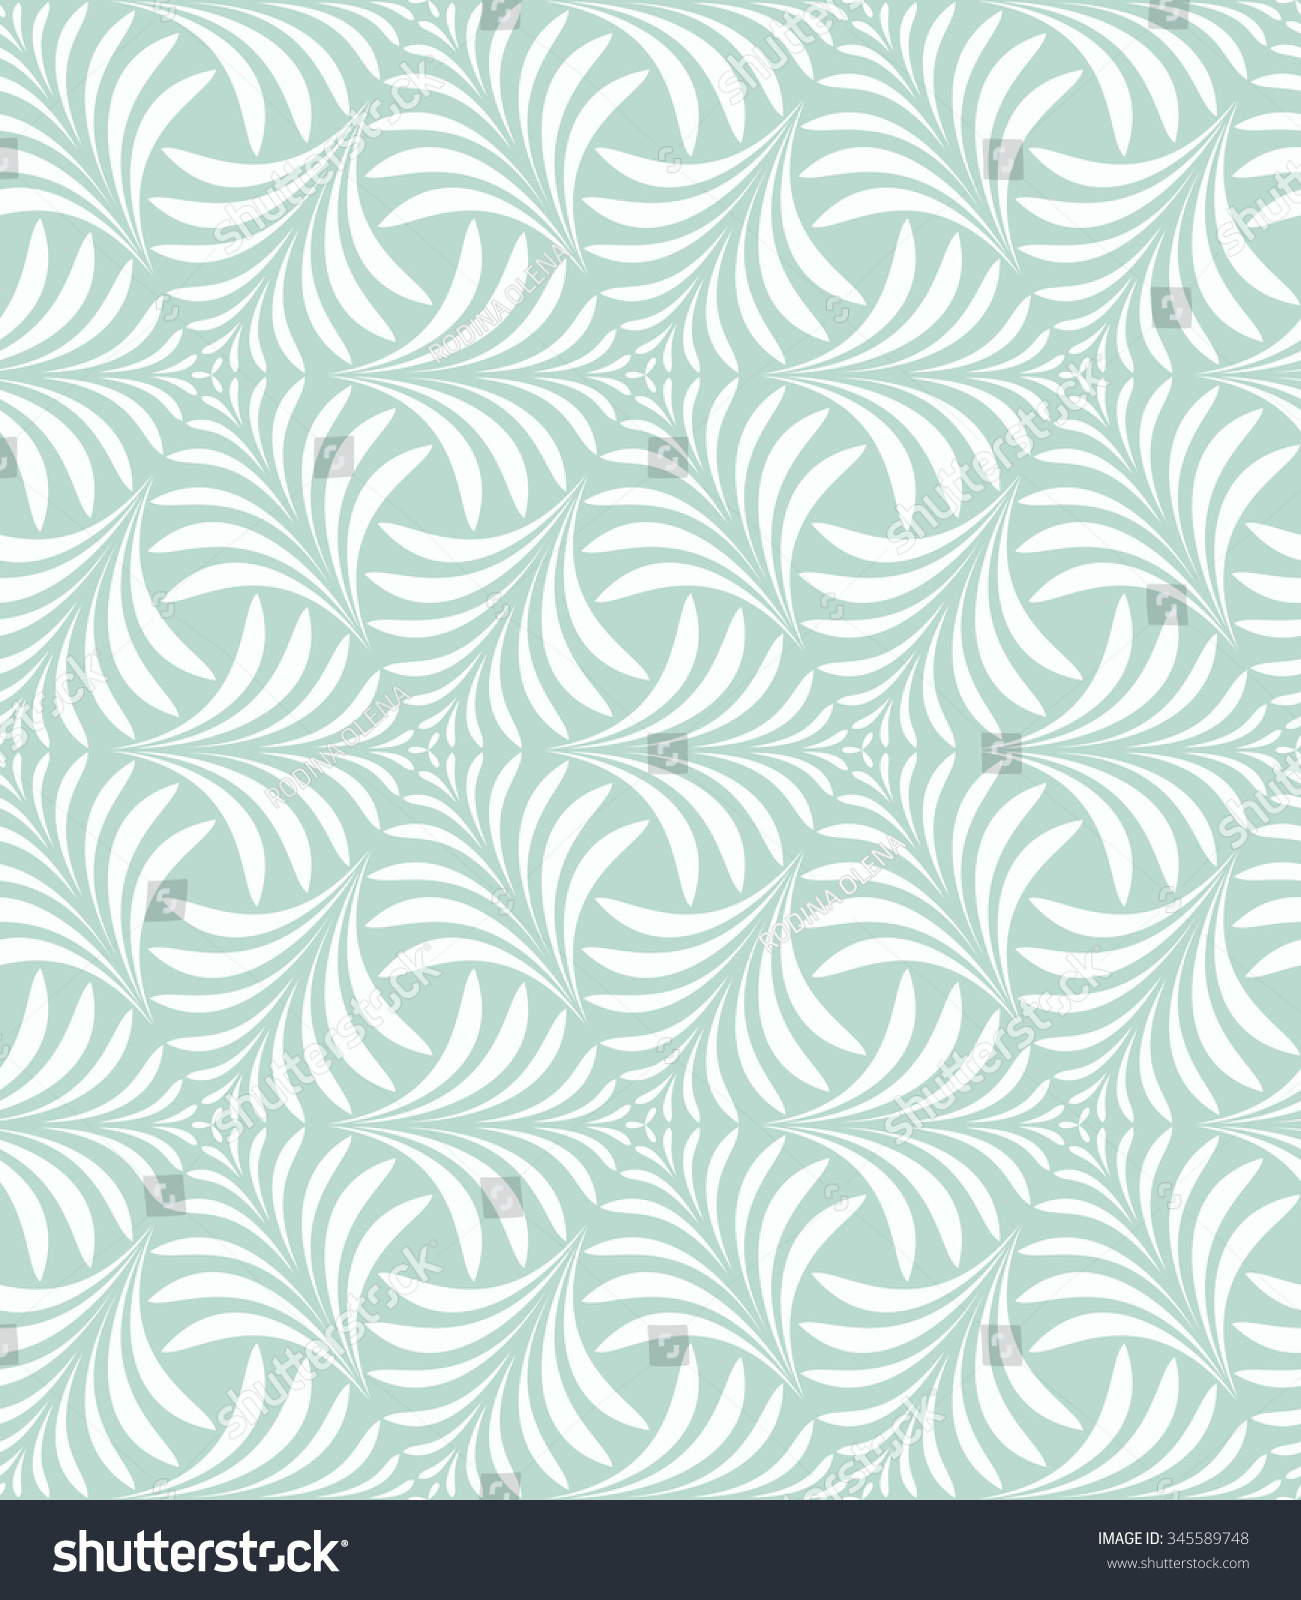 Green and white floral pattern - photo#22